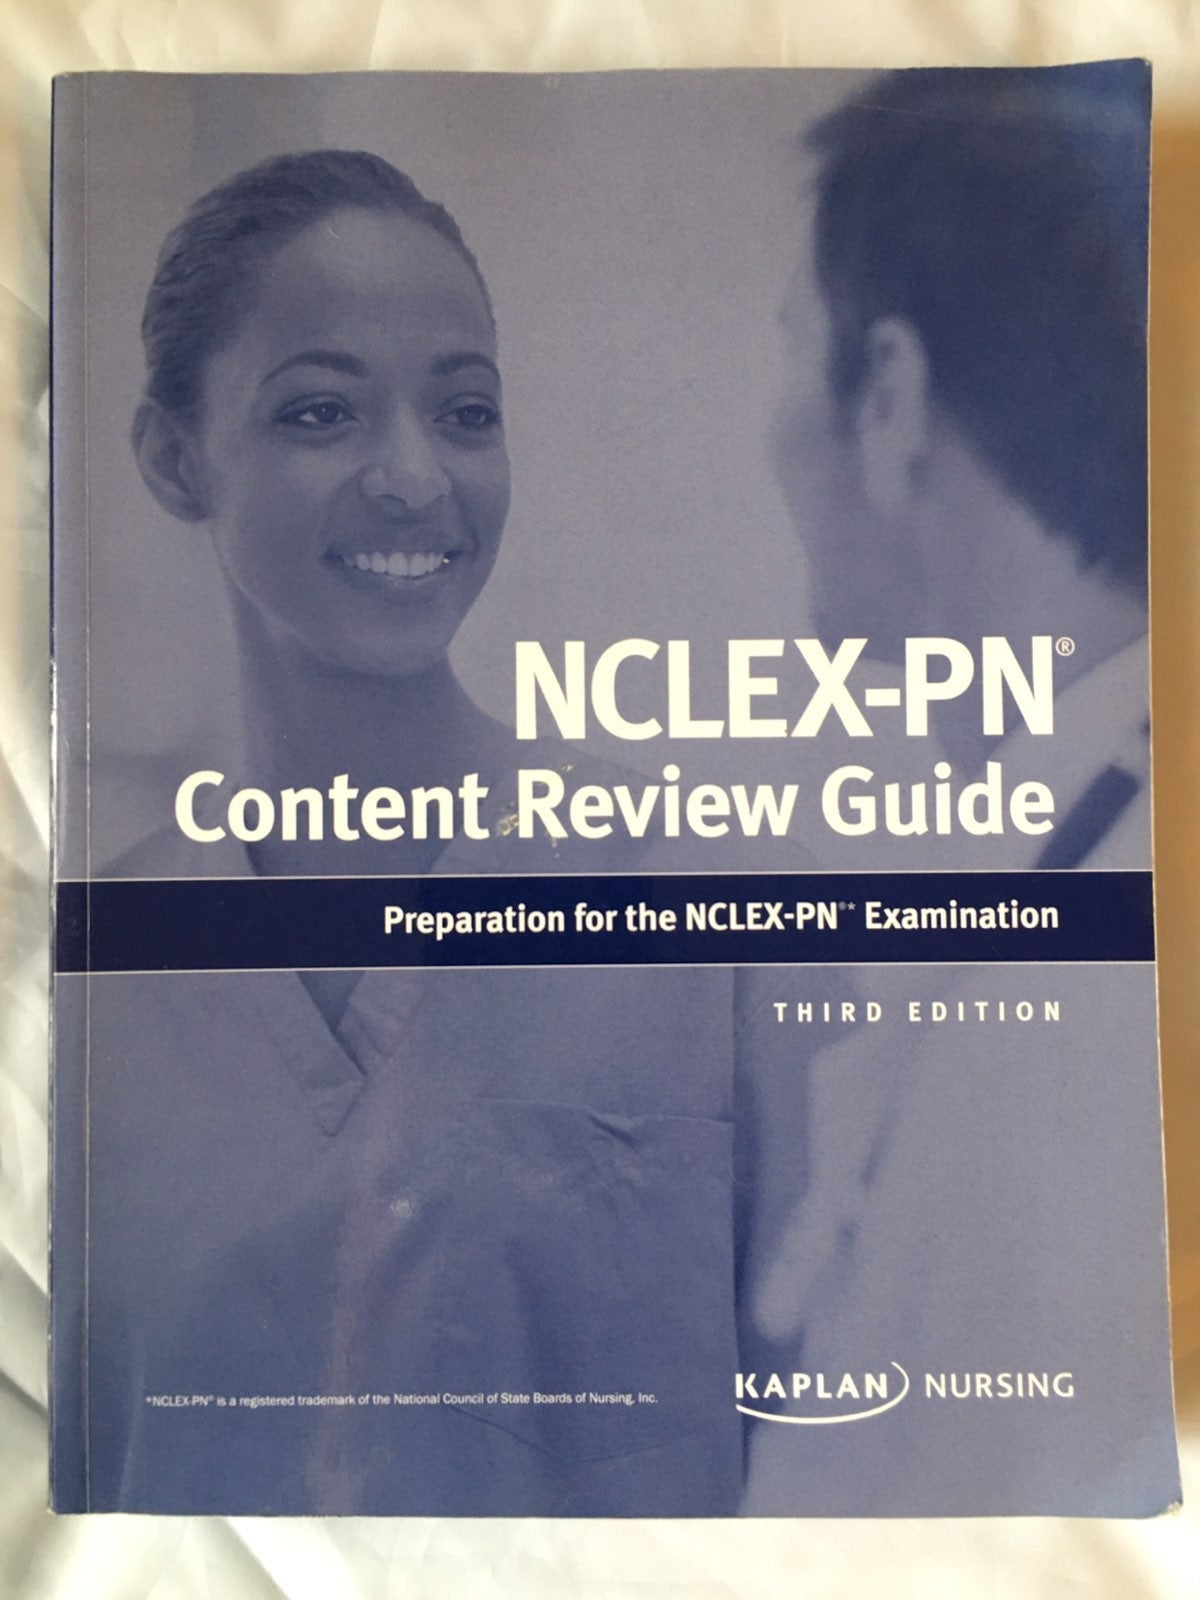 NCLEX-PN Content Review Guide, 3rd Ed